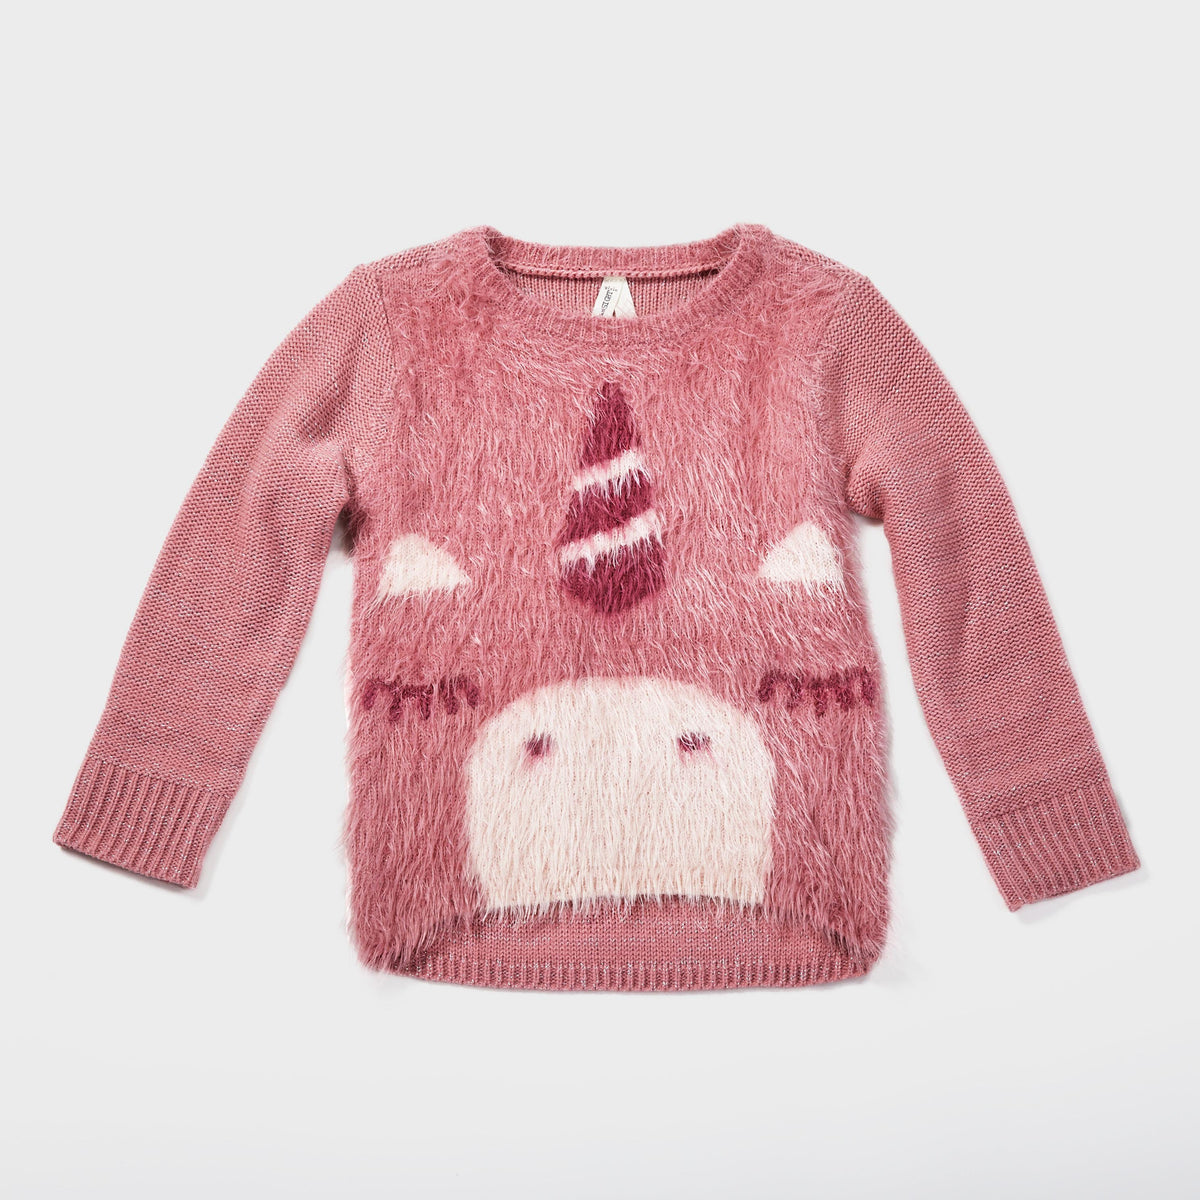 Fuzzy Unicorn Sweater